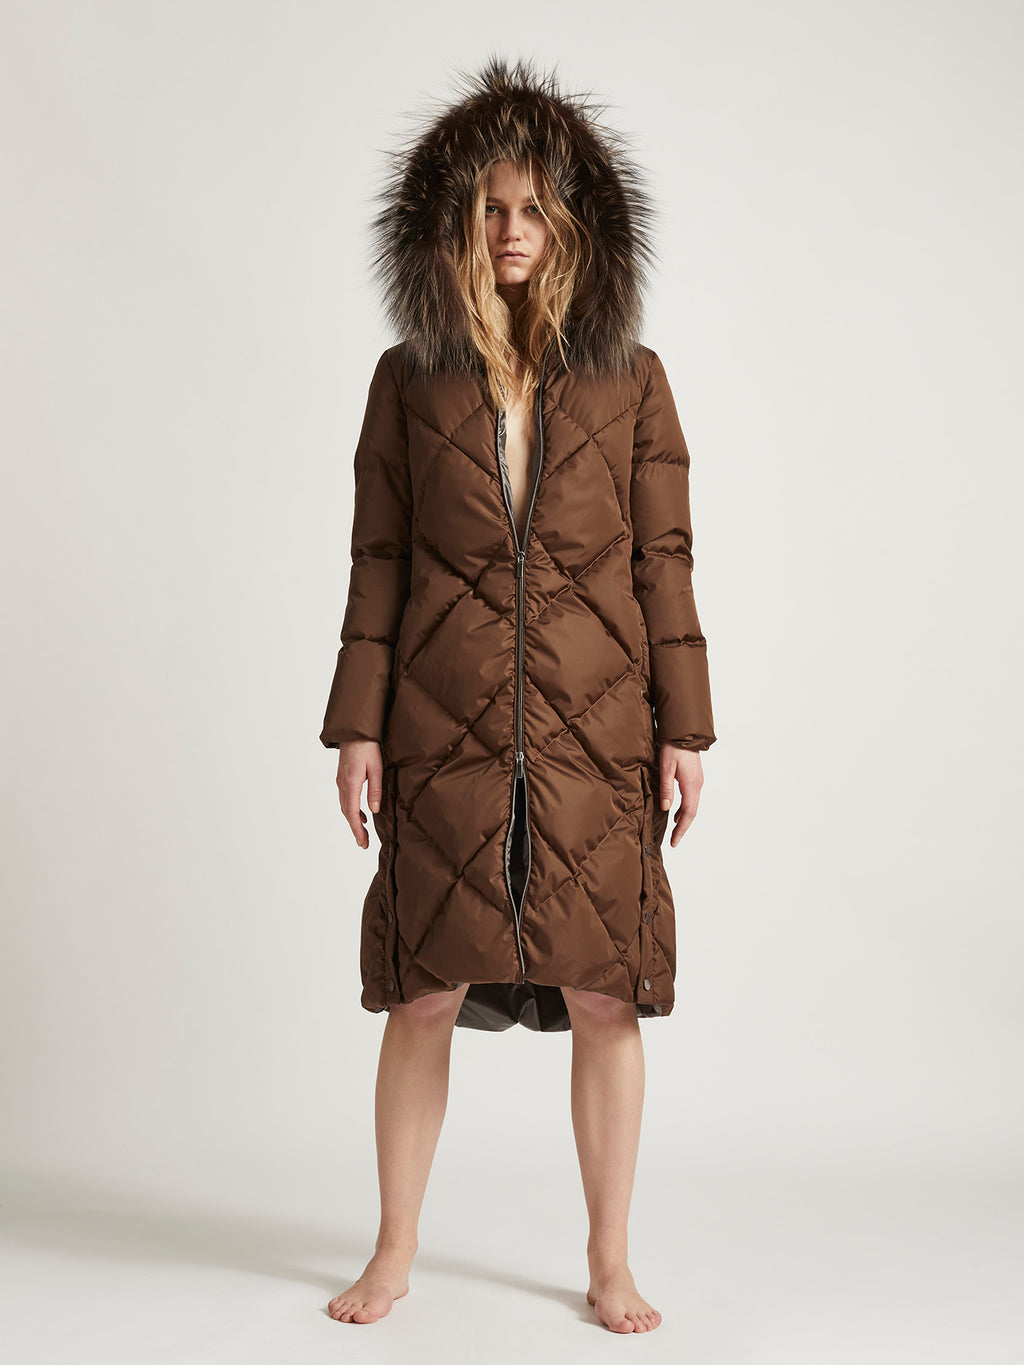 CARLA MAXI - Goose Down diamond stitched Winter Coat